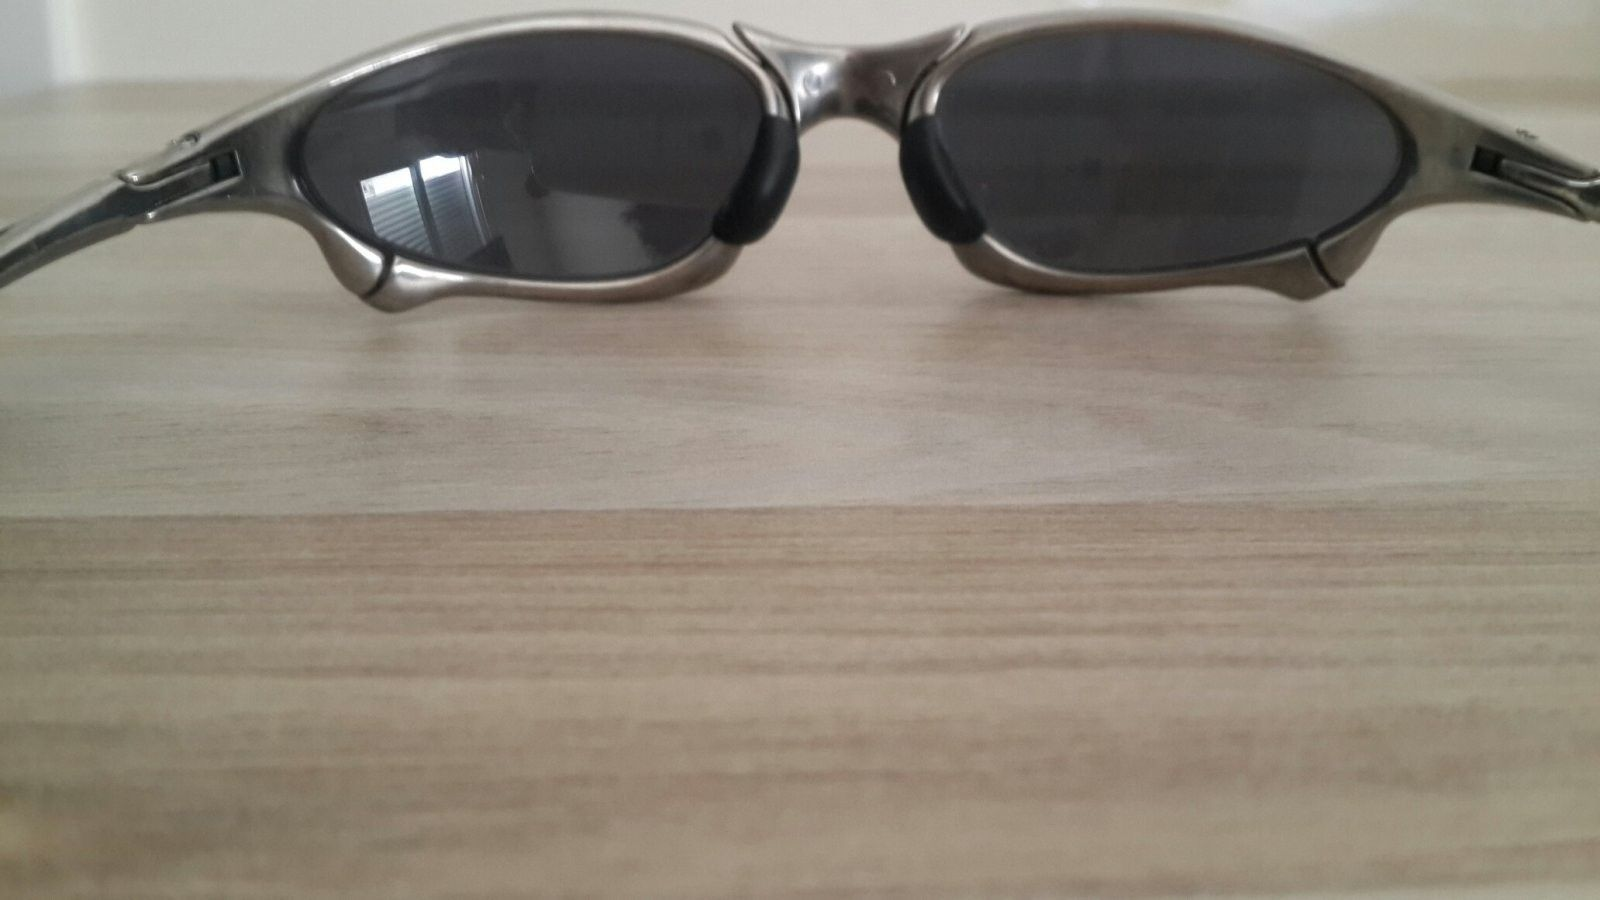 Oakley Penny Polished No Serial Number - 20141015_121840_resized.jpg